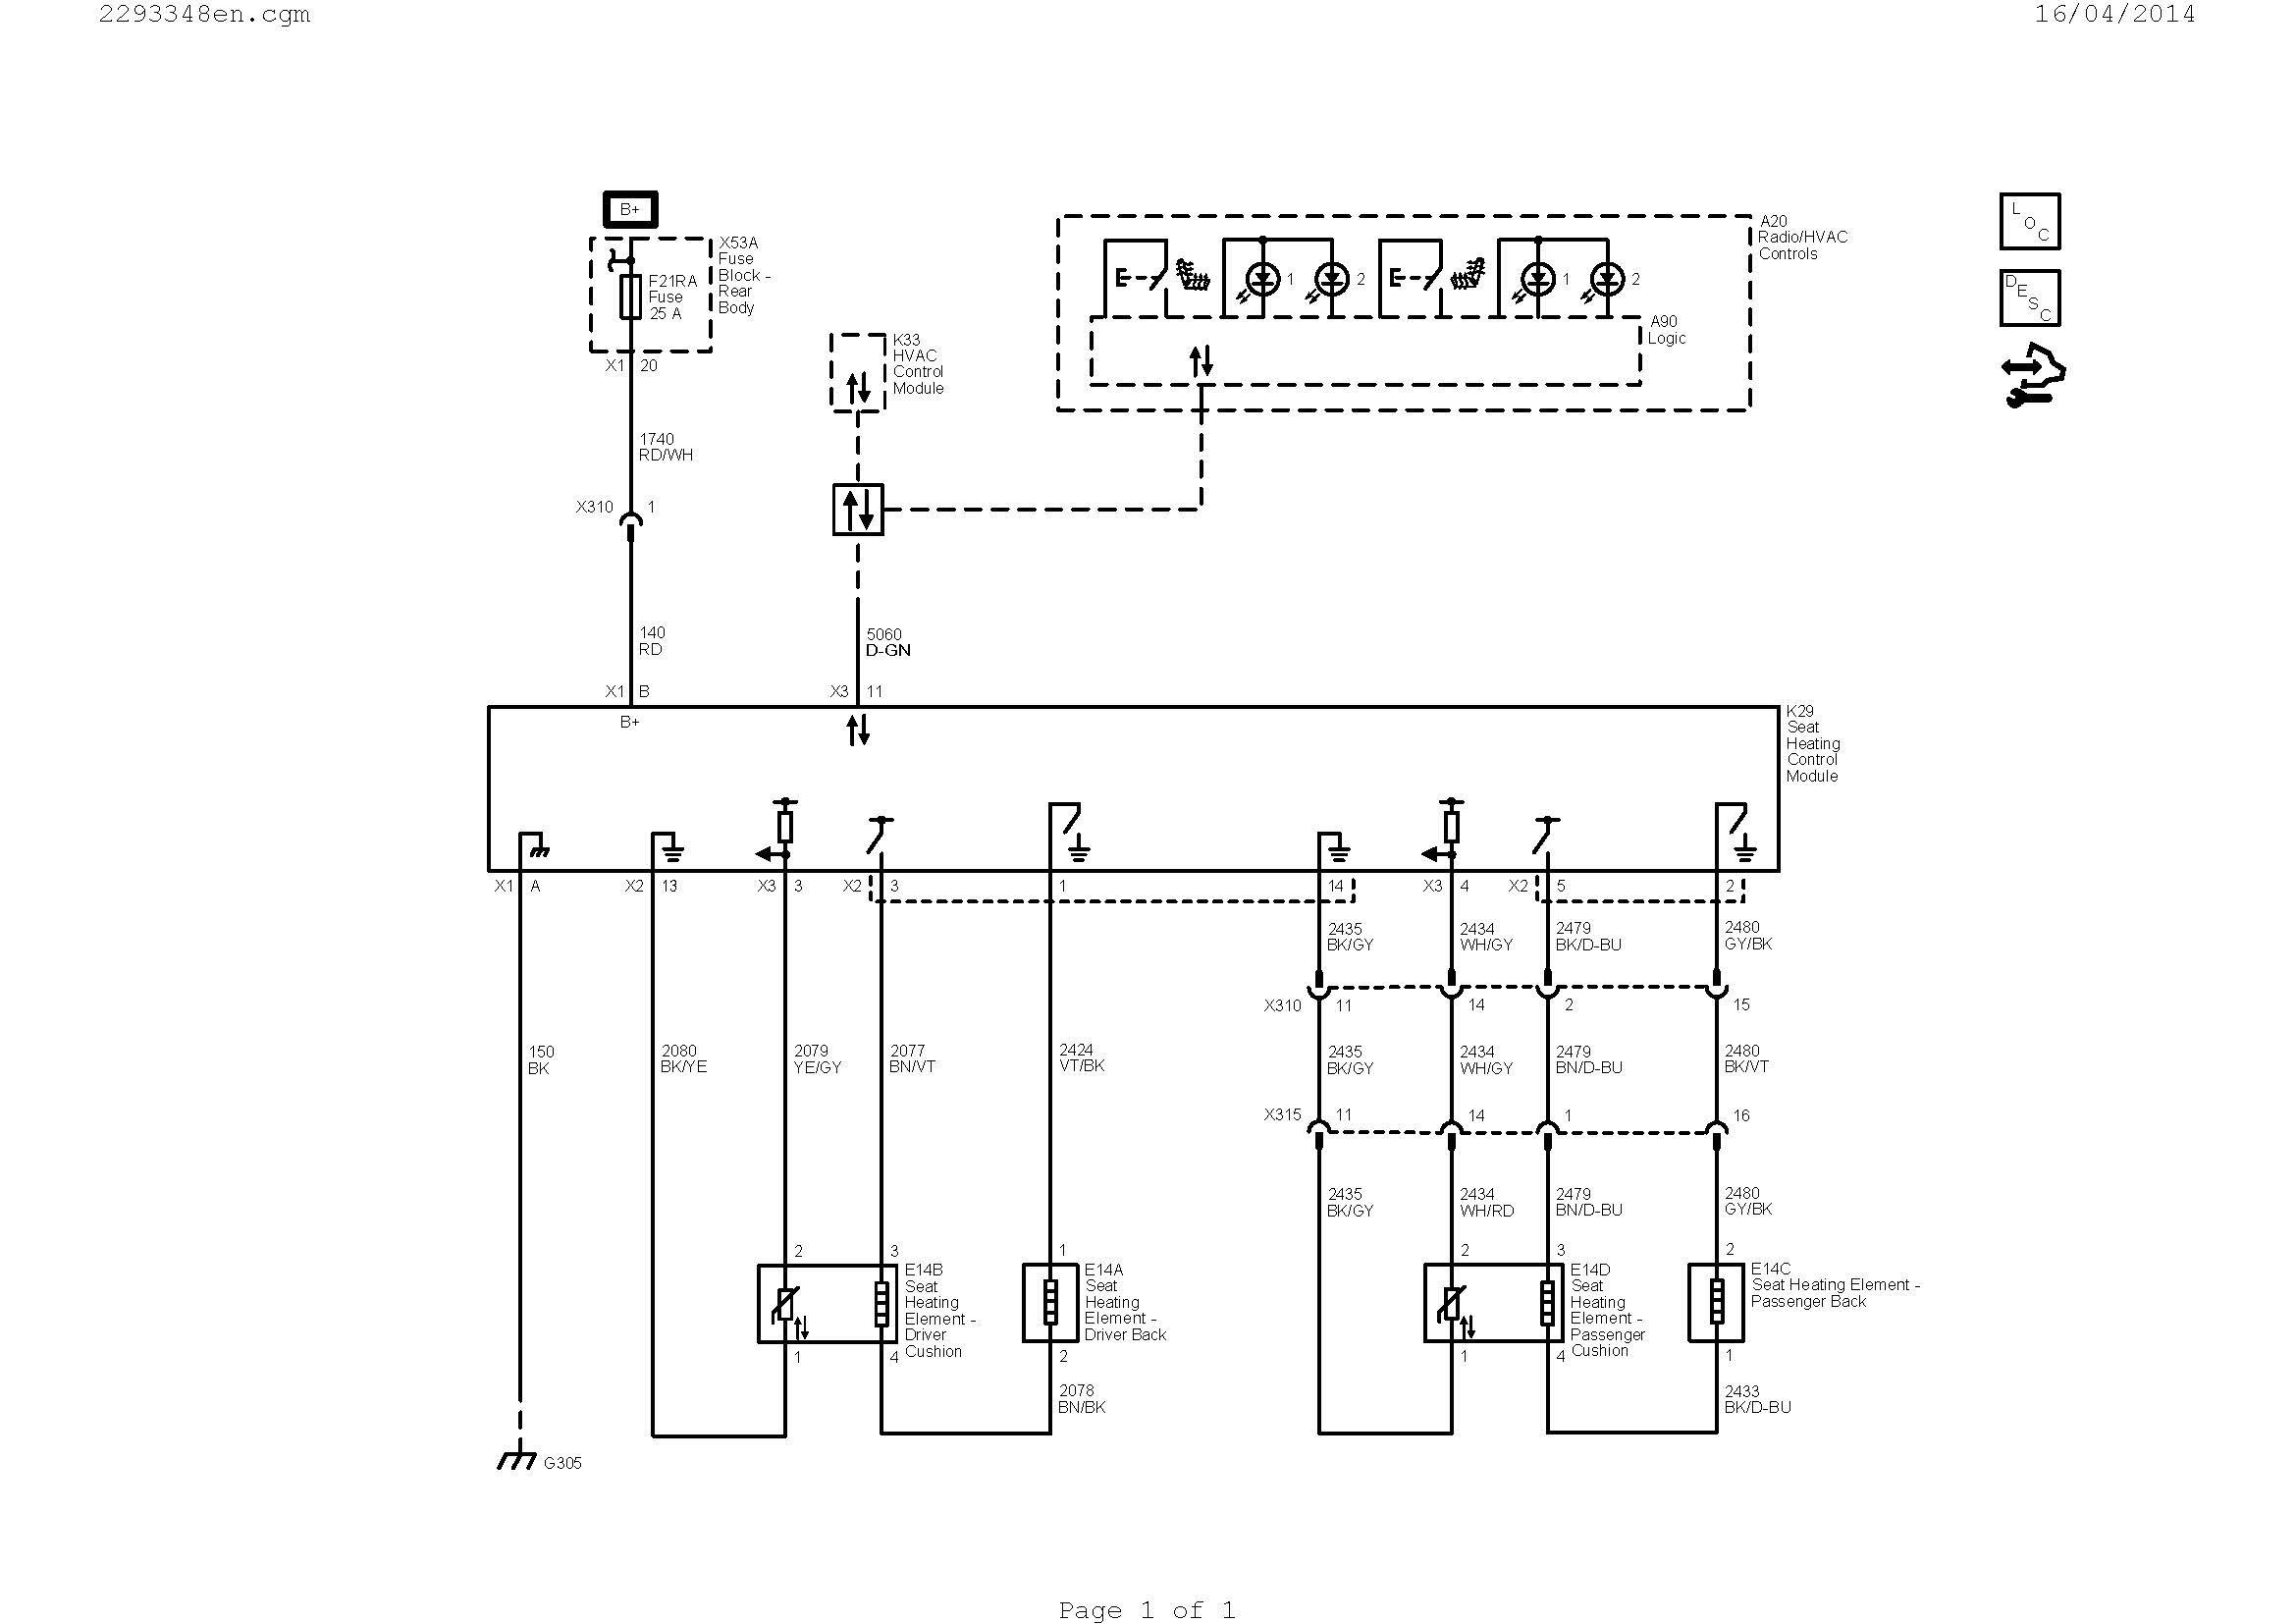 wiring diagram for thermostat to furnace Download-Nest Wireless thermostat Wiring Diagram Refrence Wiring Diagram Ac Valid Hvac Diagram Best Hvac Diagram 0d 15-c